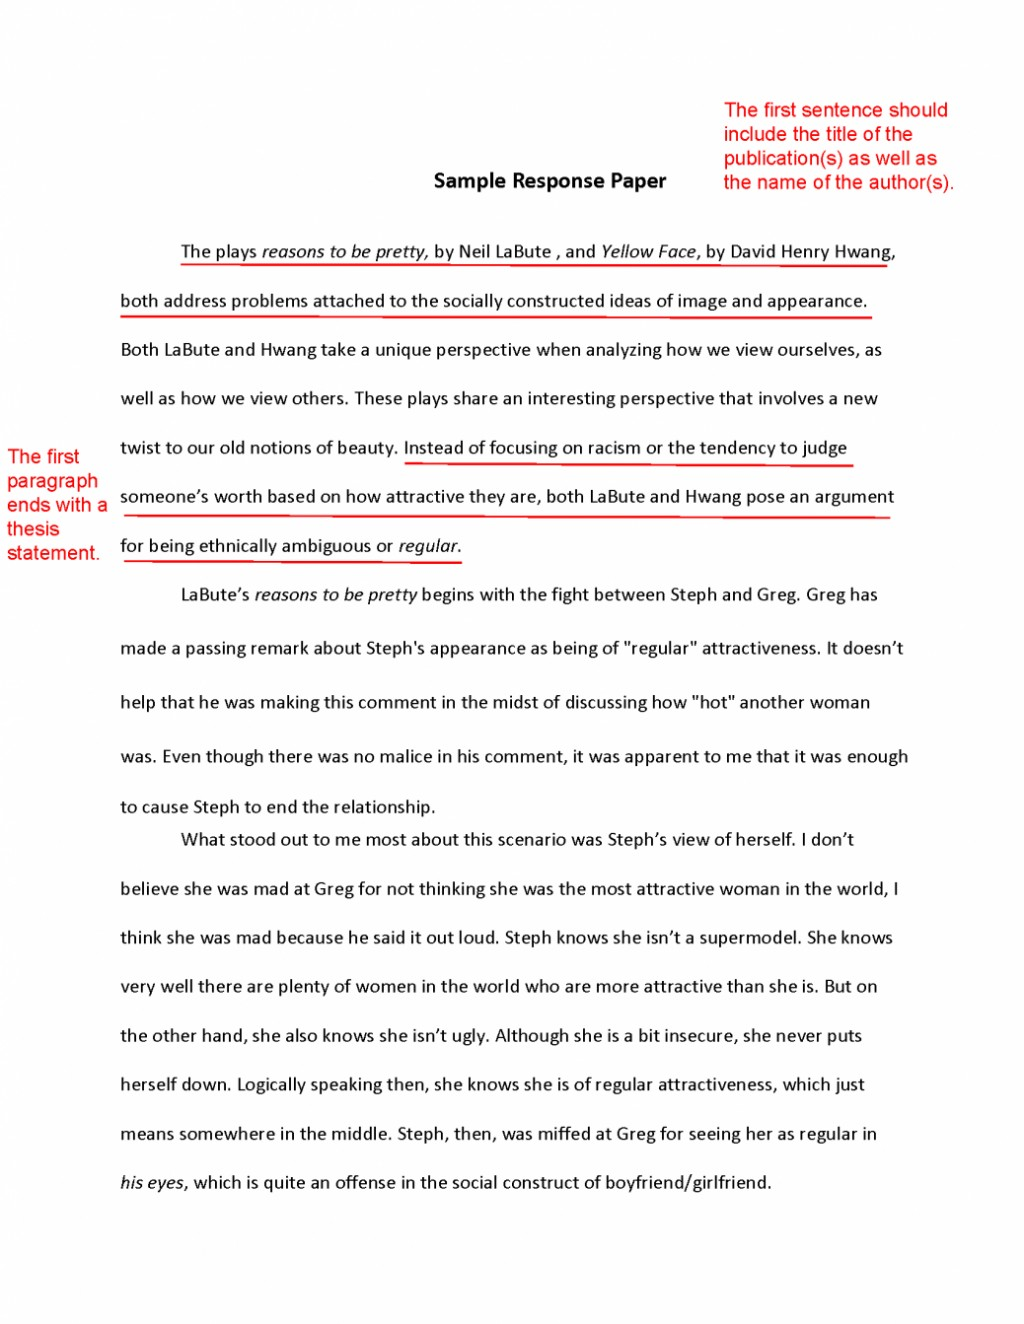 002 Ap English Research Paper Example Essay Template Responce College Board Synthesis History Sample Essays Papers Education And Incredible Large